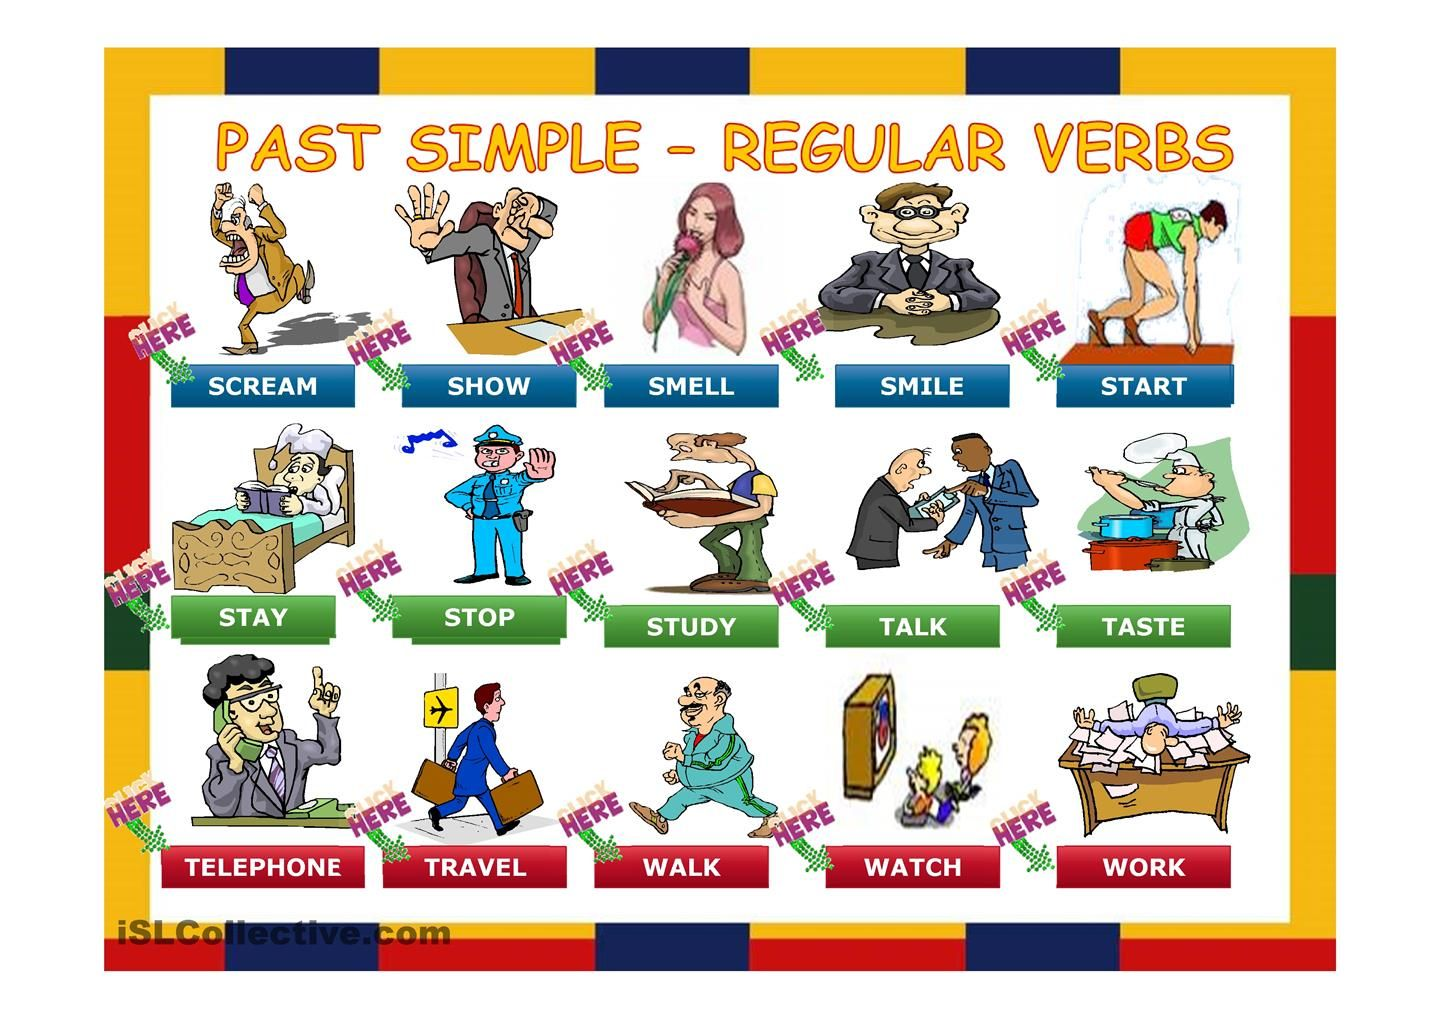 Simple Past Regular Verbs Made Easy Slide Presentation